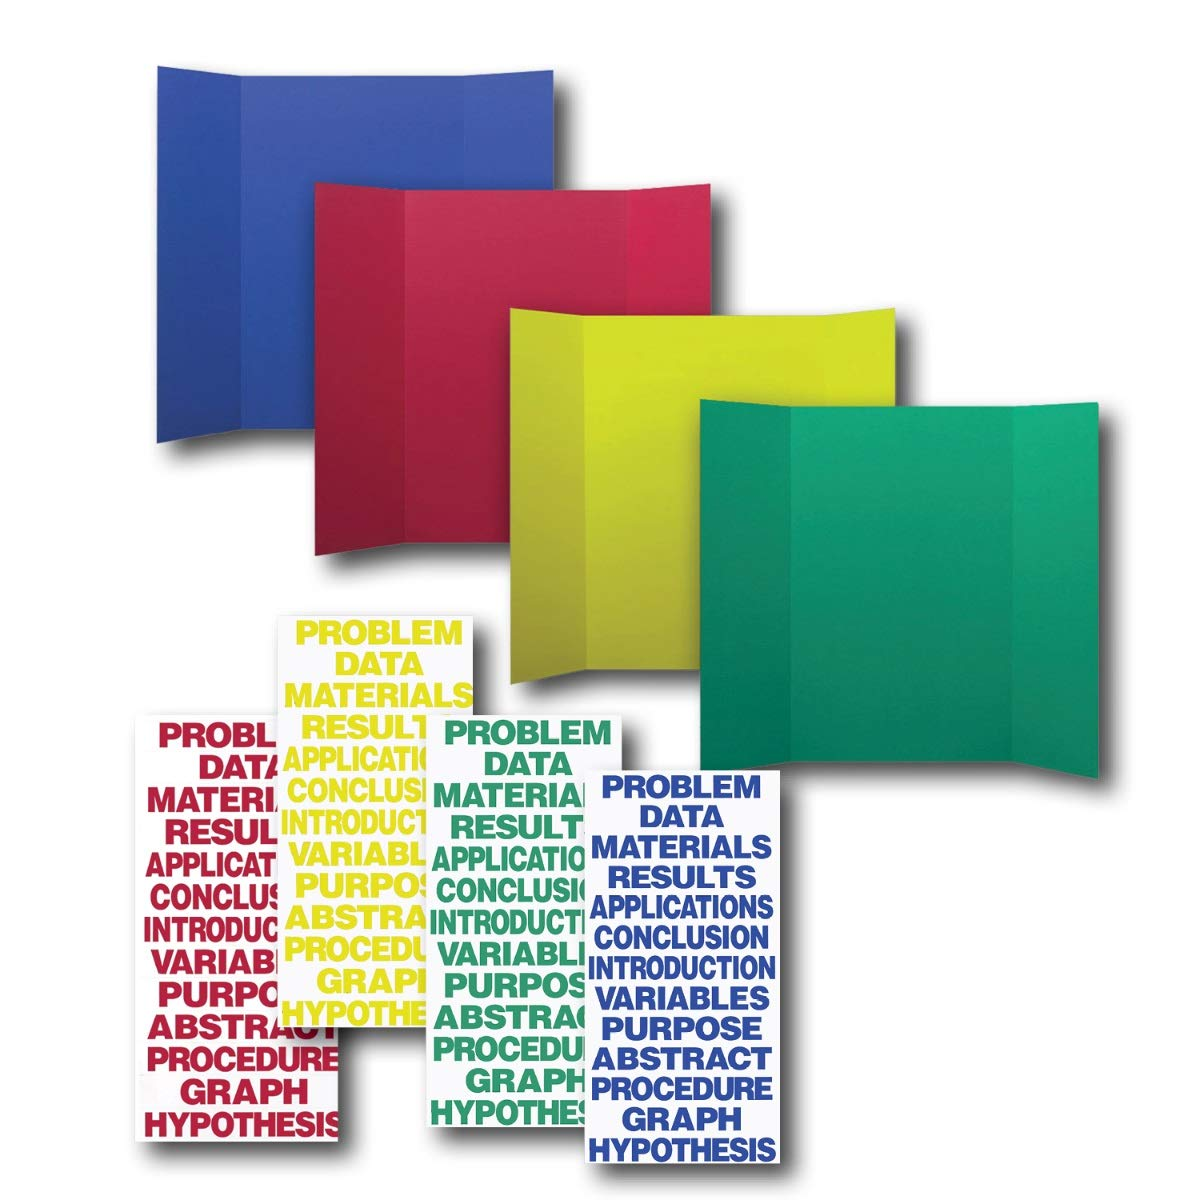 Pack of 24 Project Board Kits - Board, Header, Primary Color Letters, Numbers, Characters and Science Titles (36x48in) by Flipside